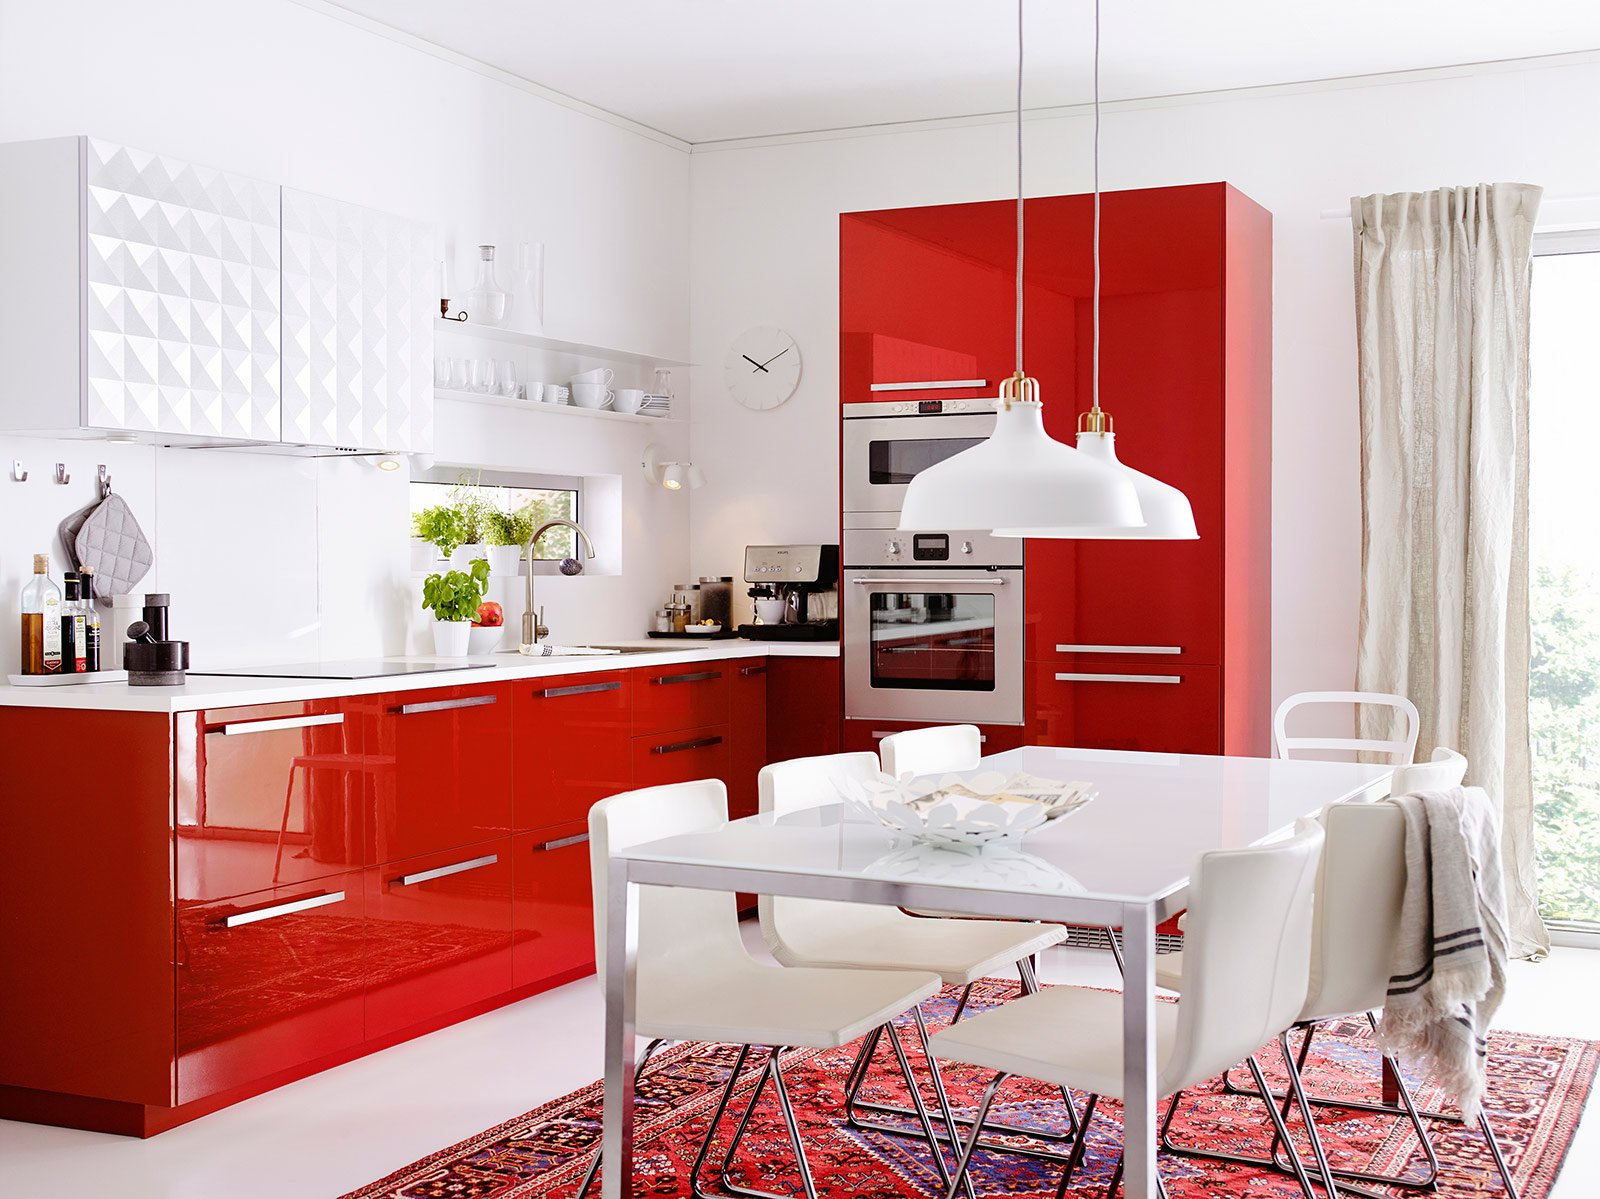 Cucine colorate come un quadro contemporaneo cose di casa for Billot ikea